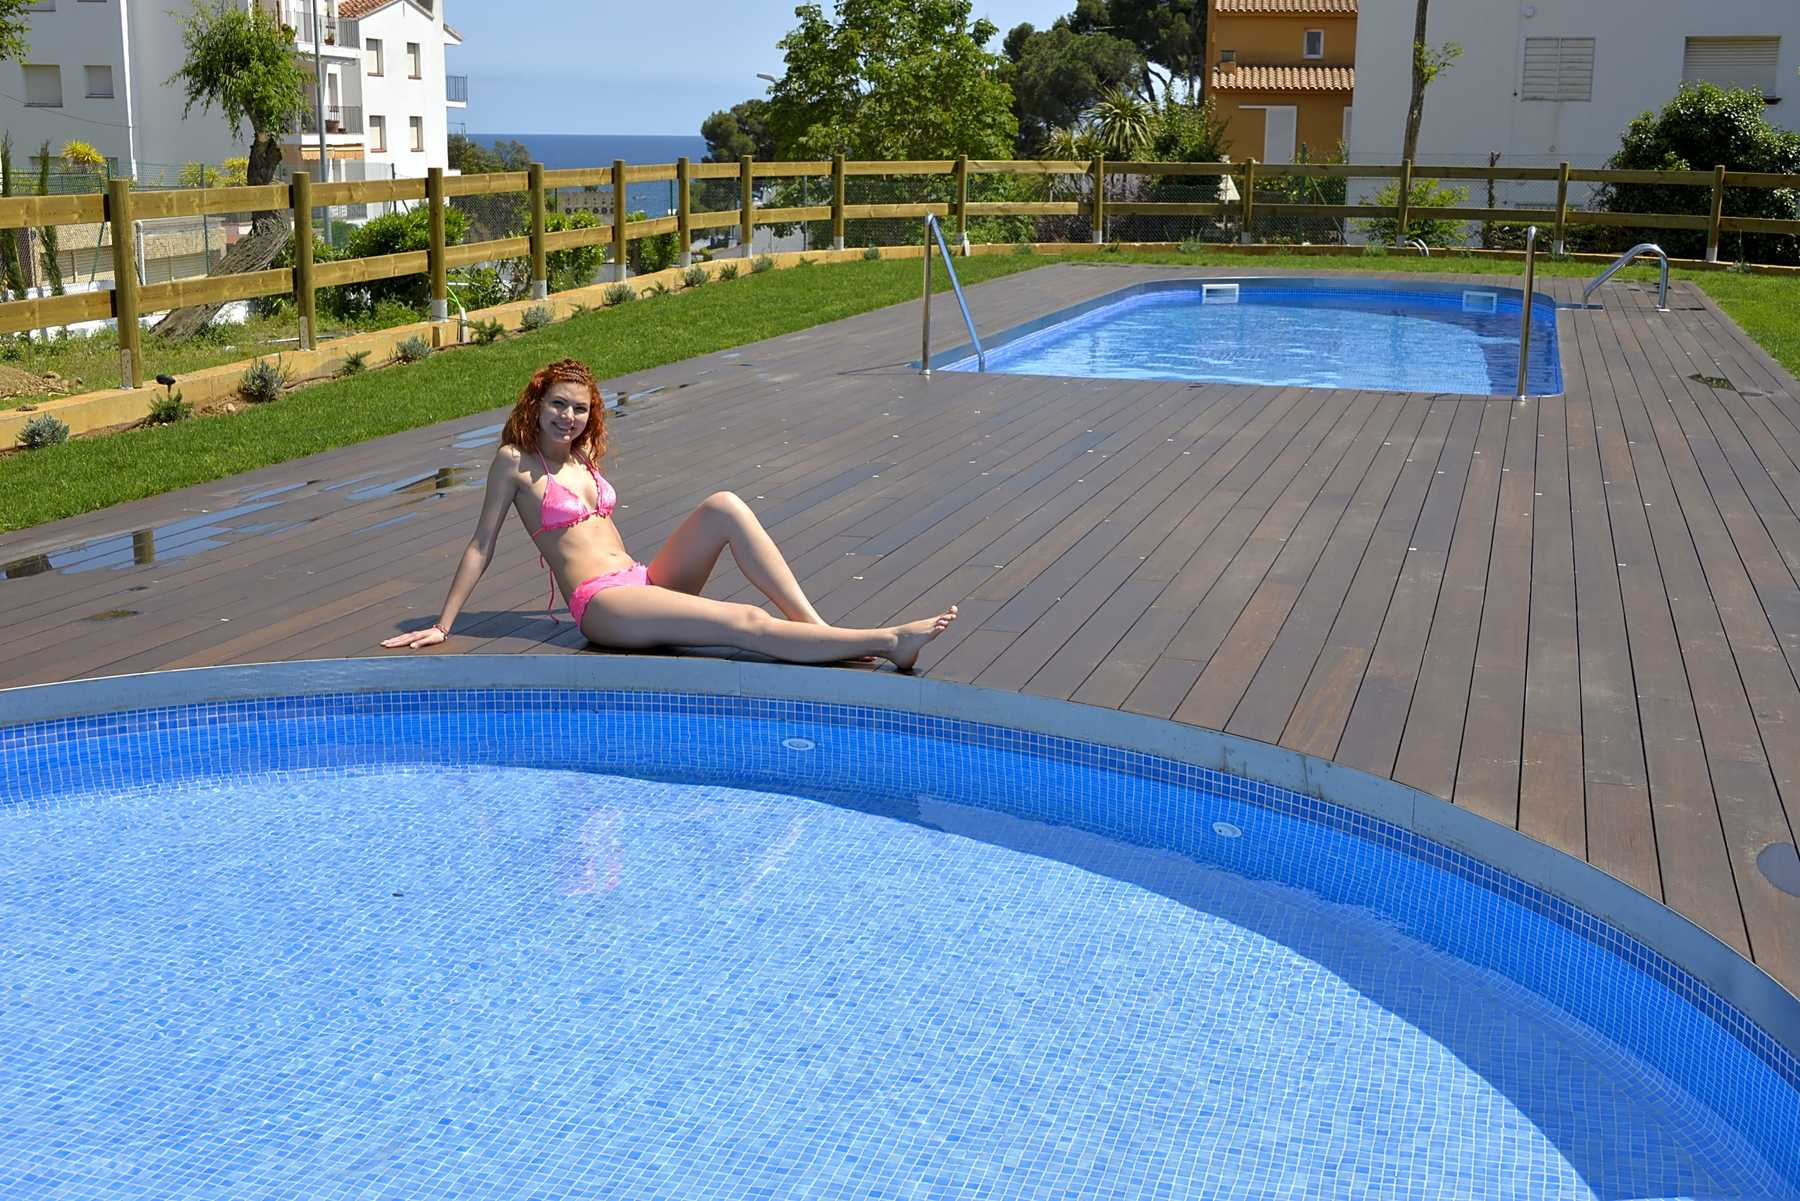 Camping Moby Dick, Calella de Palafrugell - Updated 2019